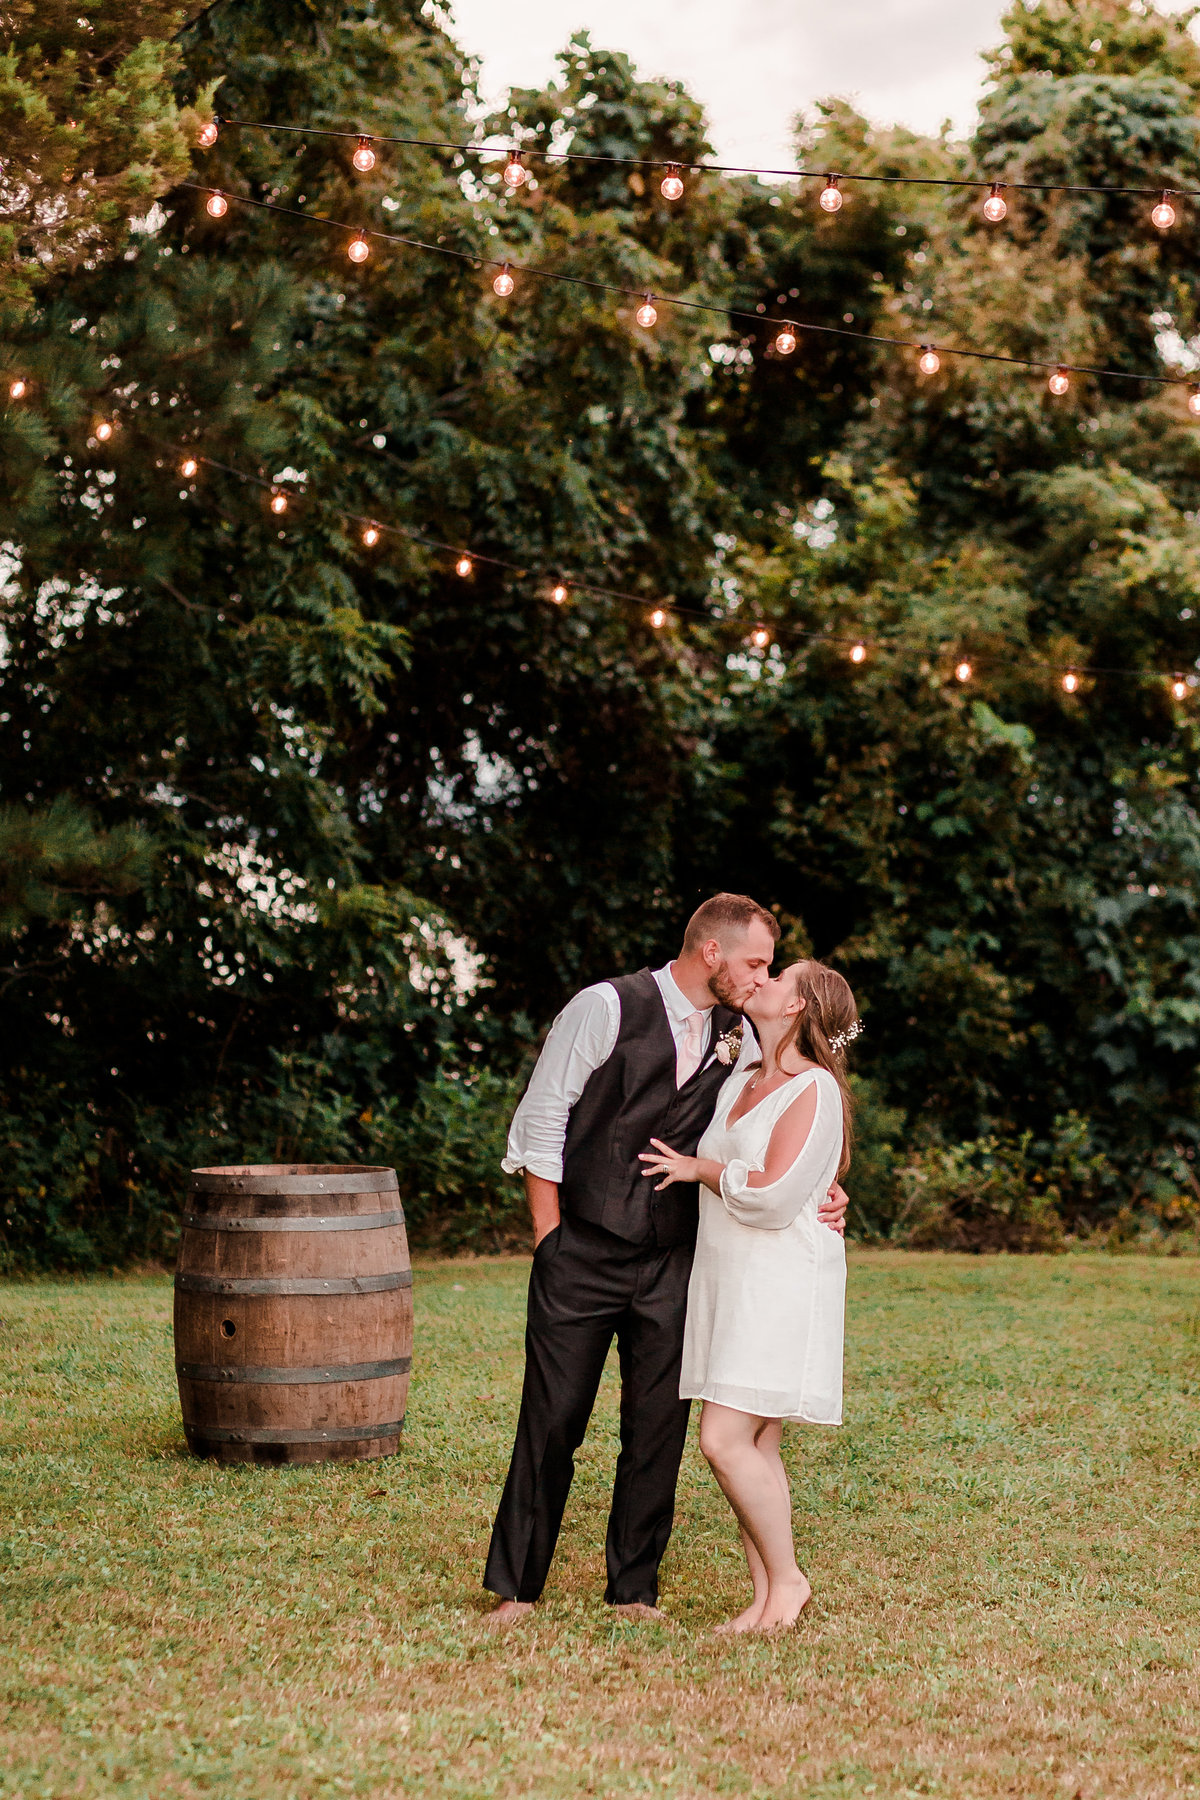 sharonelizabethphotography-surryvirginiawedding-rusticbackyardwedding-richmondvirginiaoutdoorwedding0973